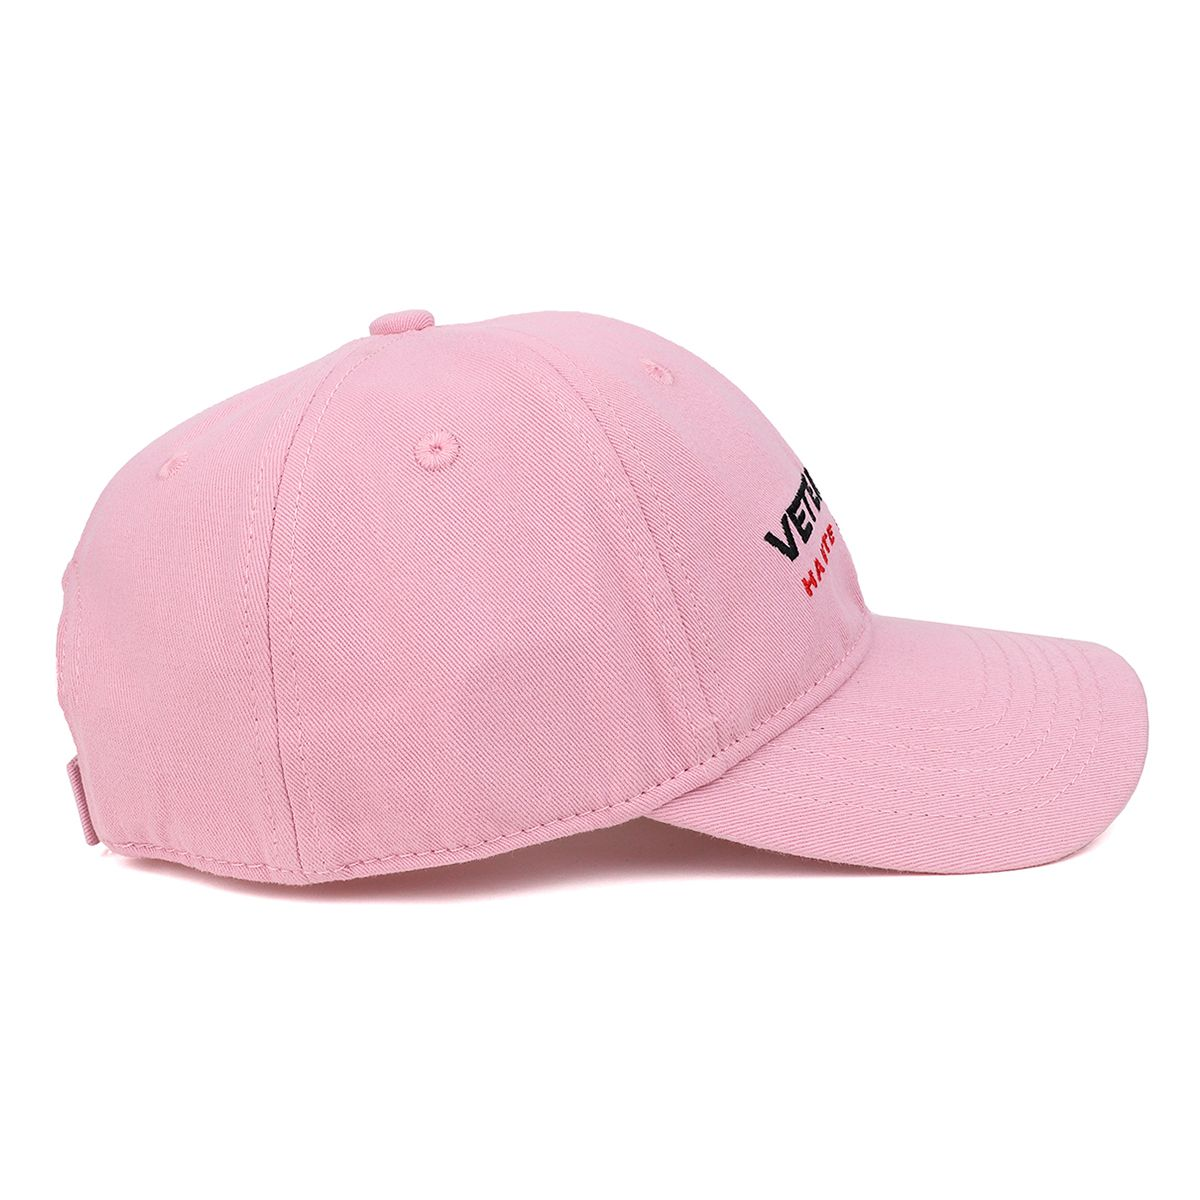 VETEMENTS VETEMENTS HAUTE COUTURE CAP / BABY PINK